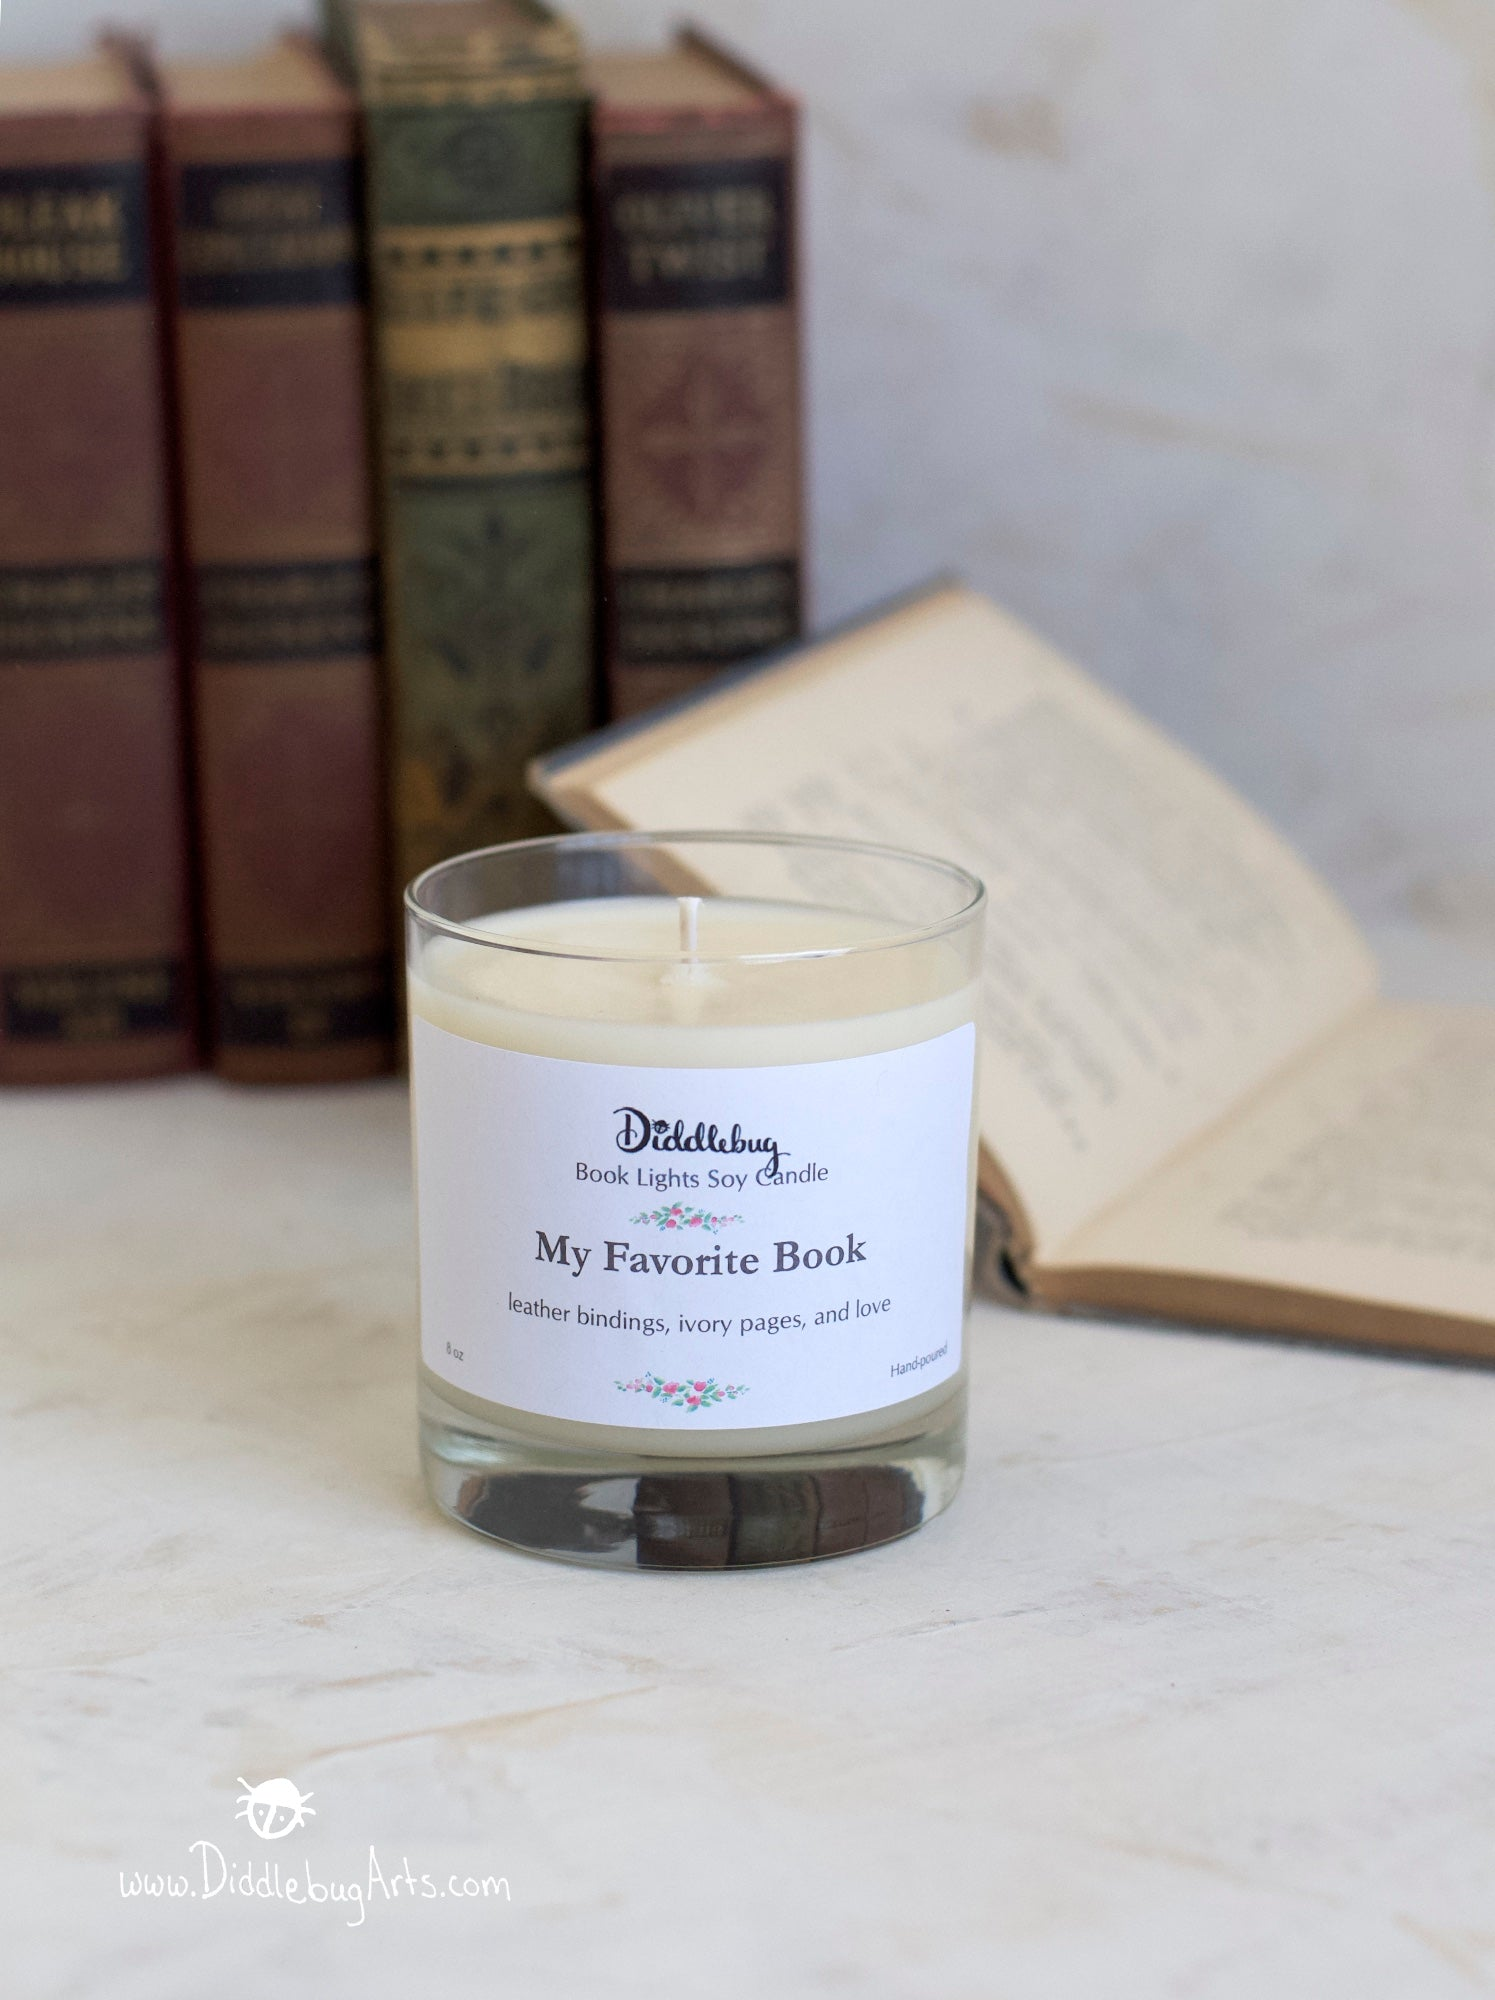 My Favorite Book Hand-Poured Soy Glass Jar Candle